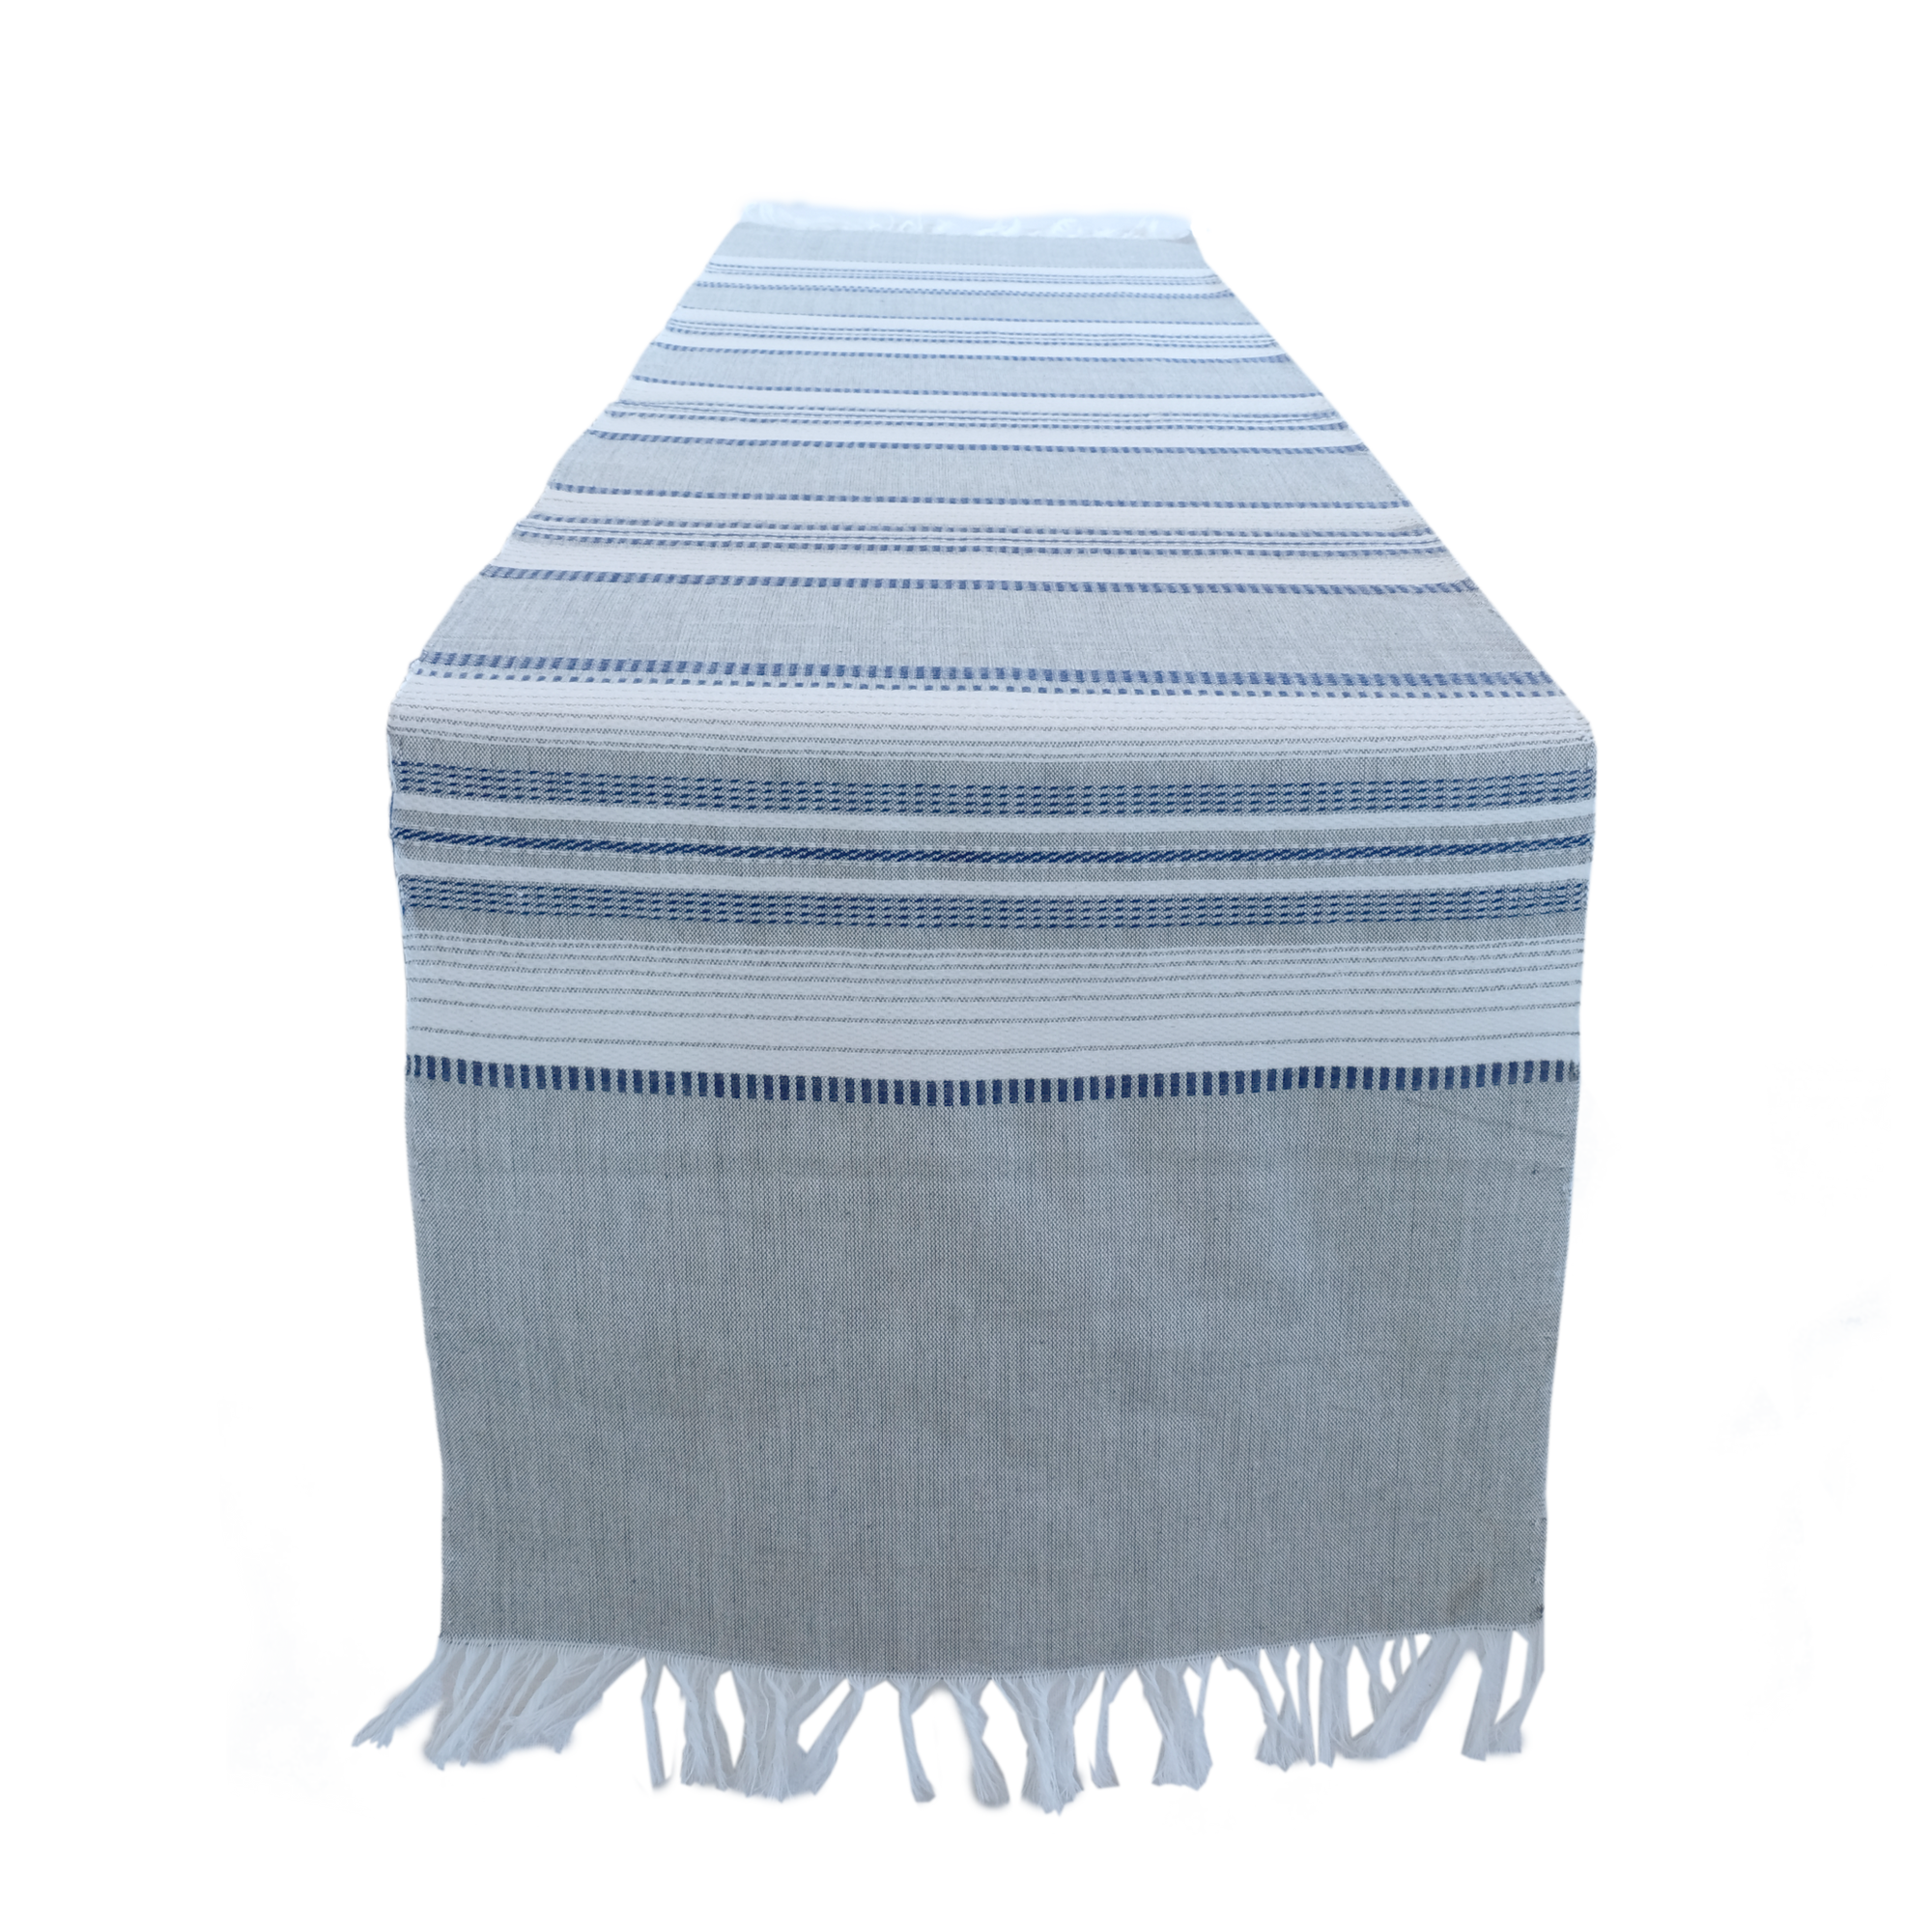 El Tun Stripes Table Runner Linens Sobremesa by Greenheart - ROVE AND SWIG